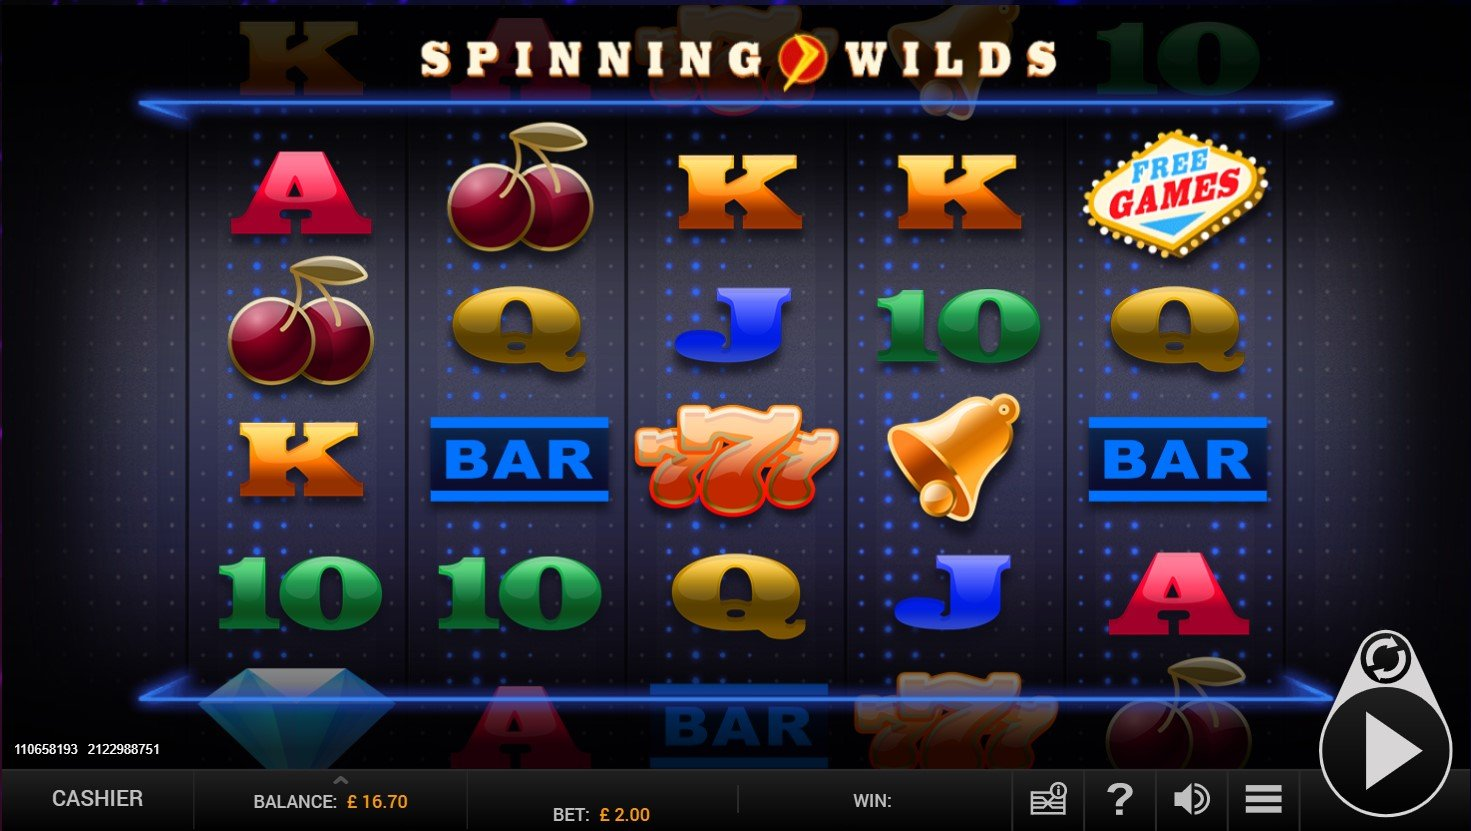 Spinning Wilds online slot at PlayOJO